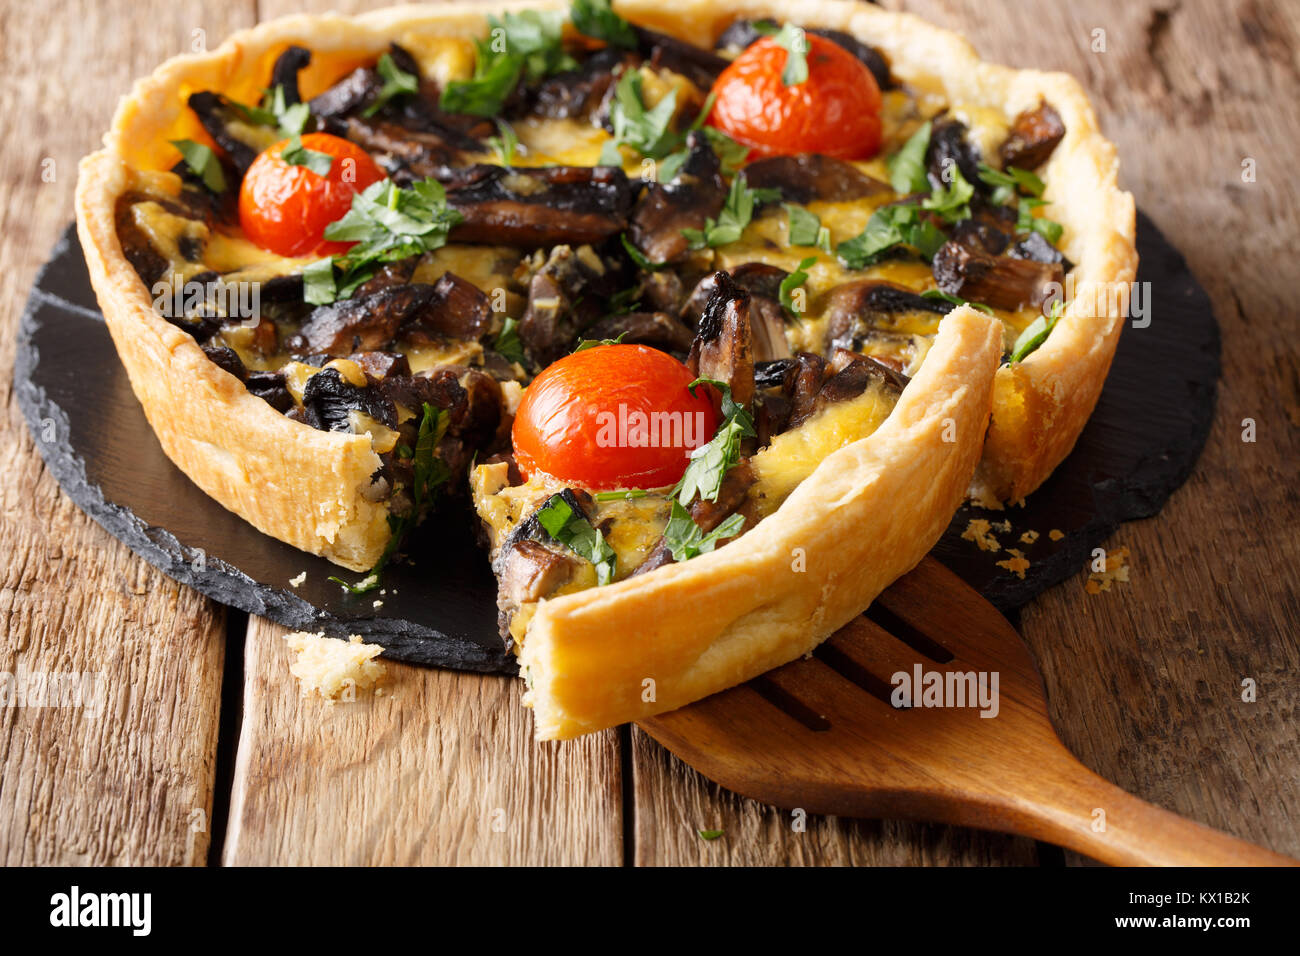 Sliced mushroom tart with cheese and tomatoes close-up on the table. horizontal - Stock Image